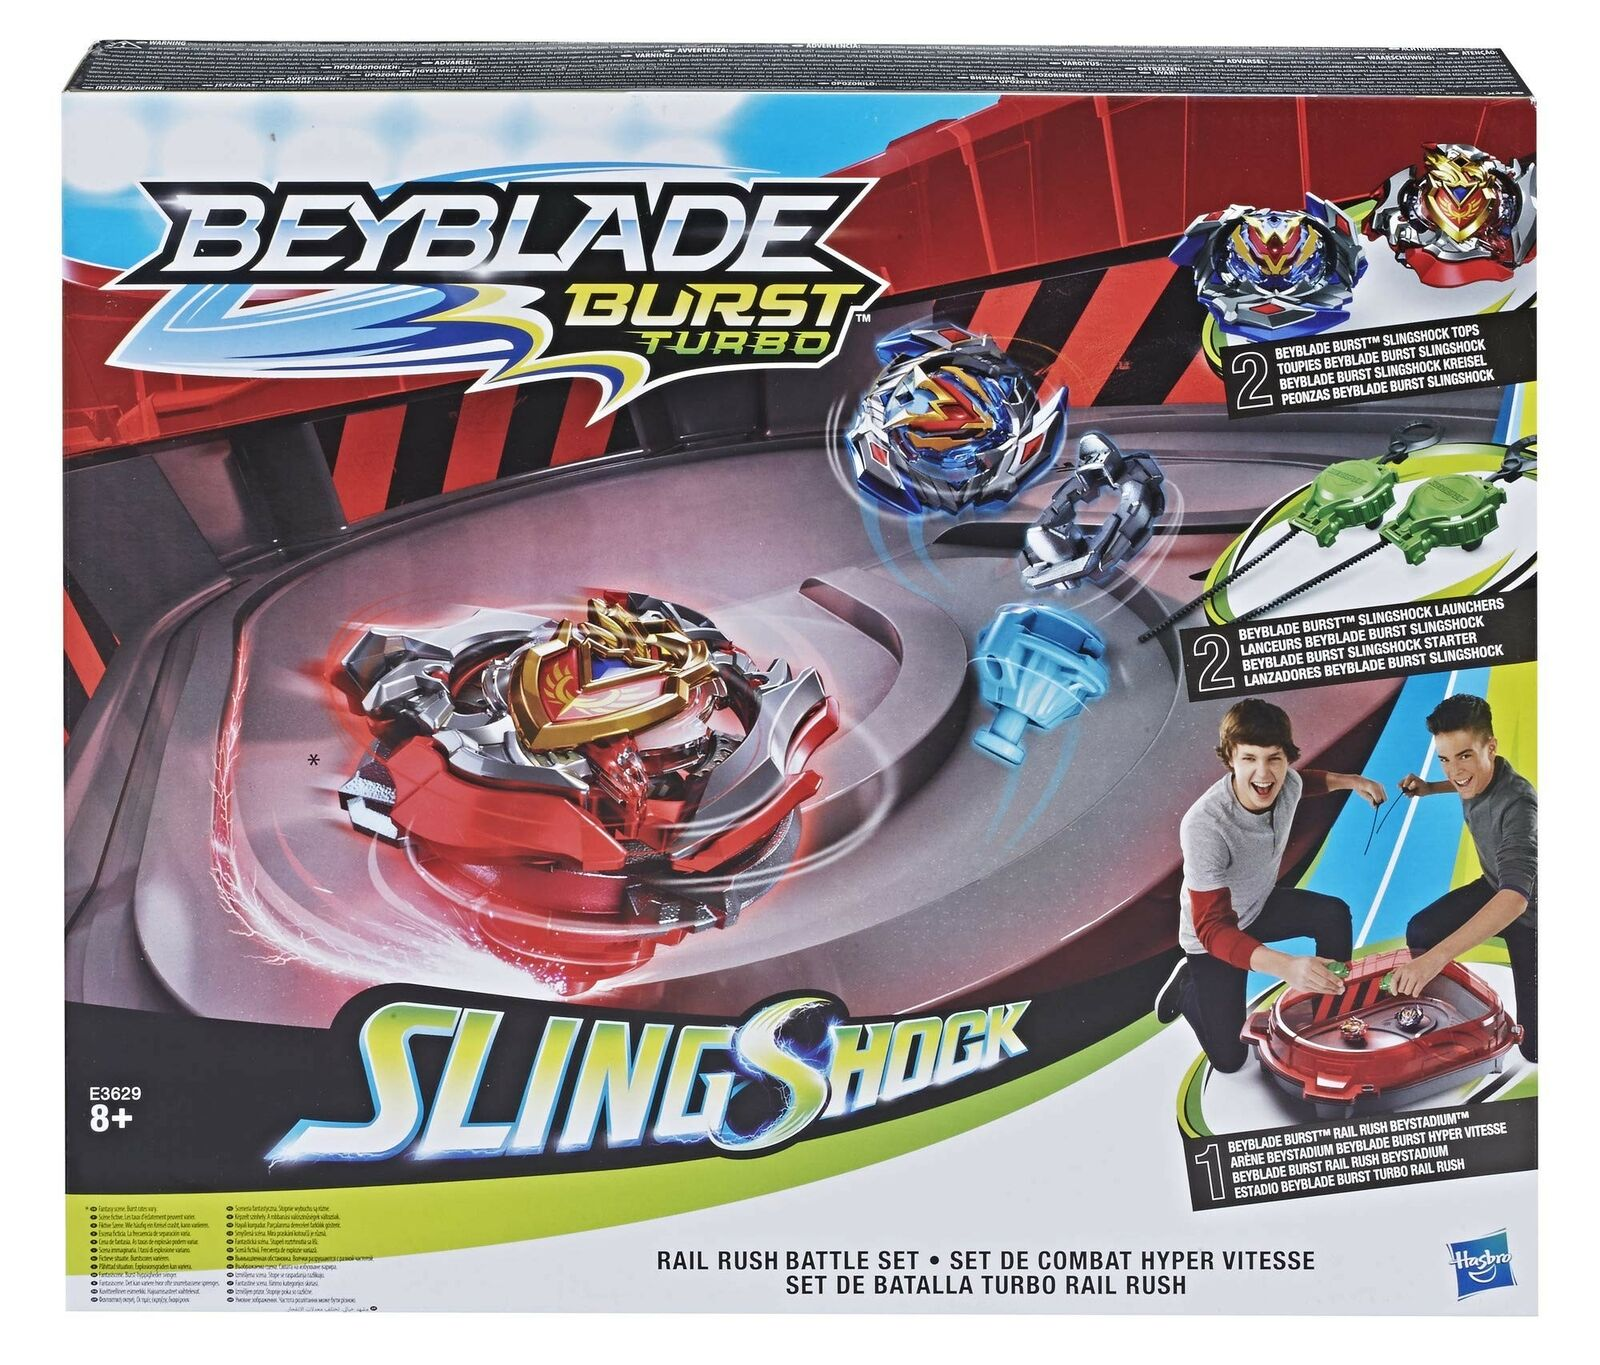 Beyblade BEY BLADE E3629EU5 Rail Rush Battle Figure Set, Multi-Colour